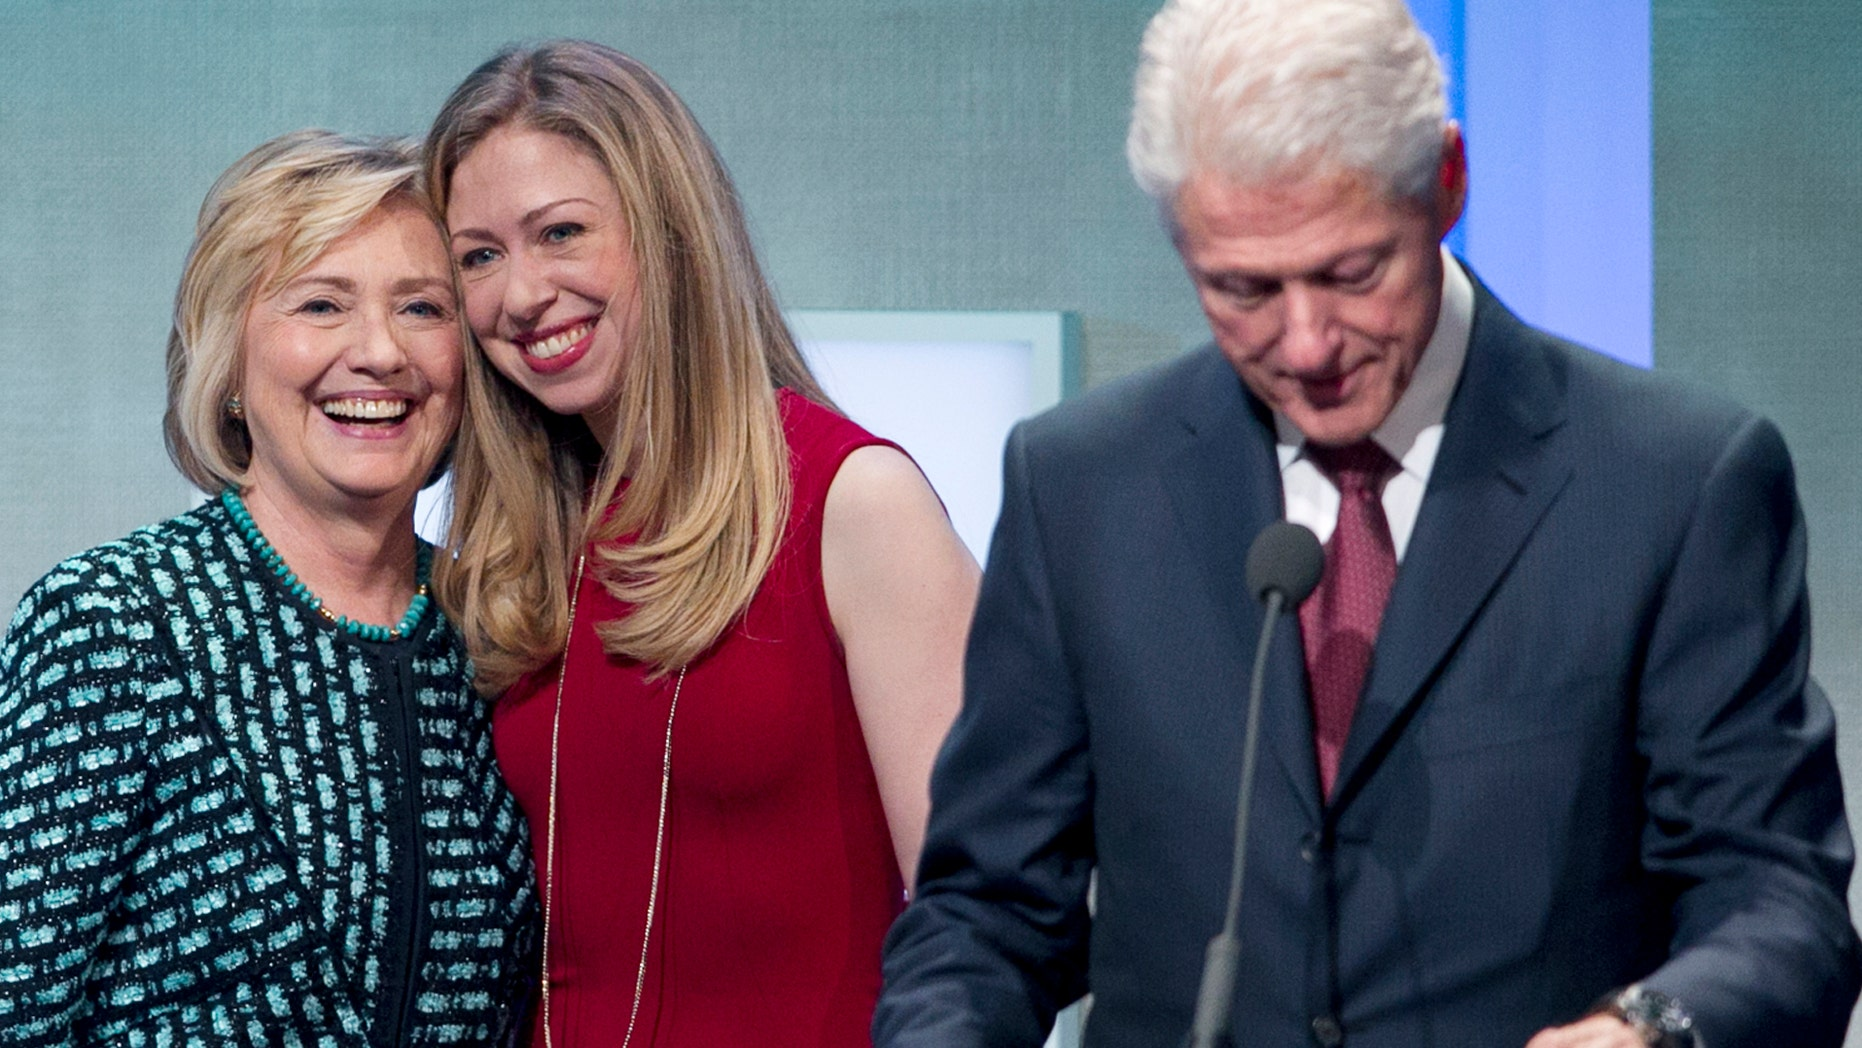 Former President Bill Clinton prepares to make remarks at the Clinton Global Initiative while his wife, Hillary Rodham Clinton, and daughter, Chelsea, take the stage with him, Tuesday, Sept. 24, 2013 in New York.